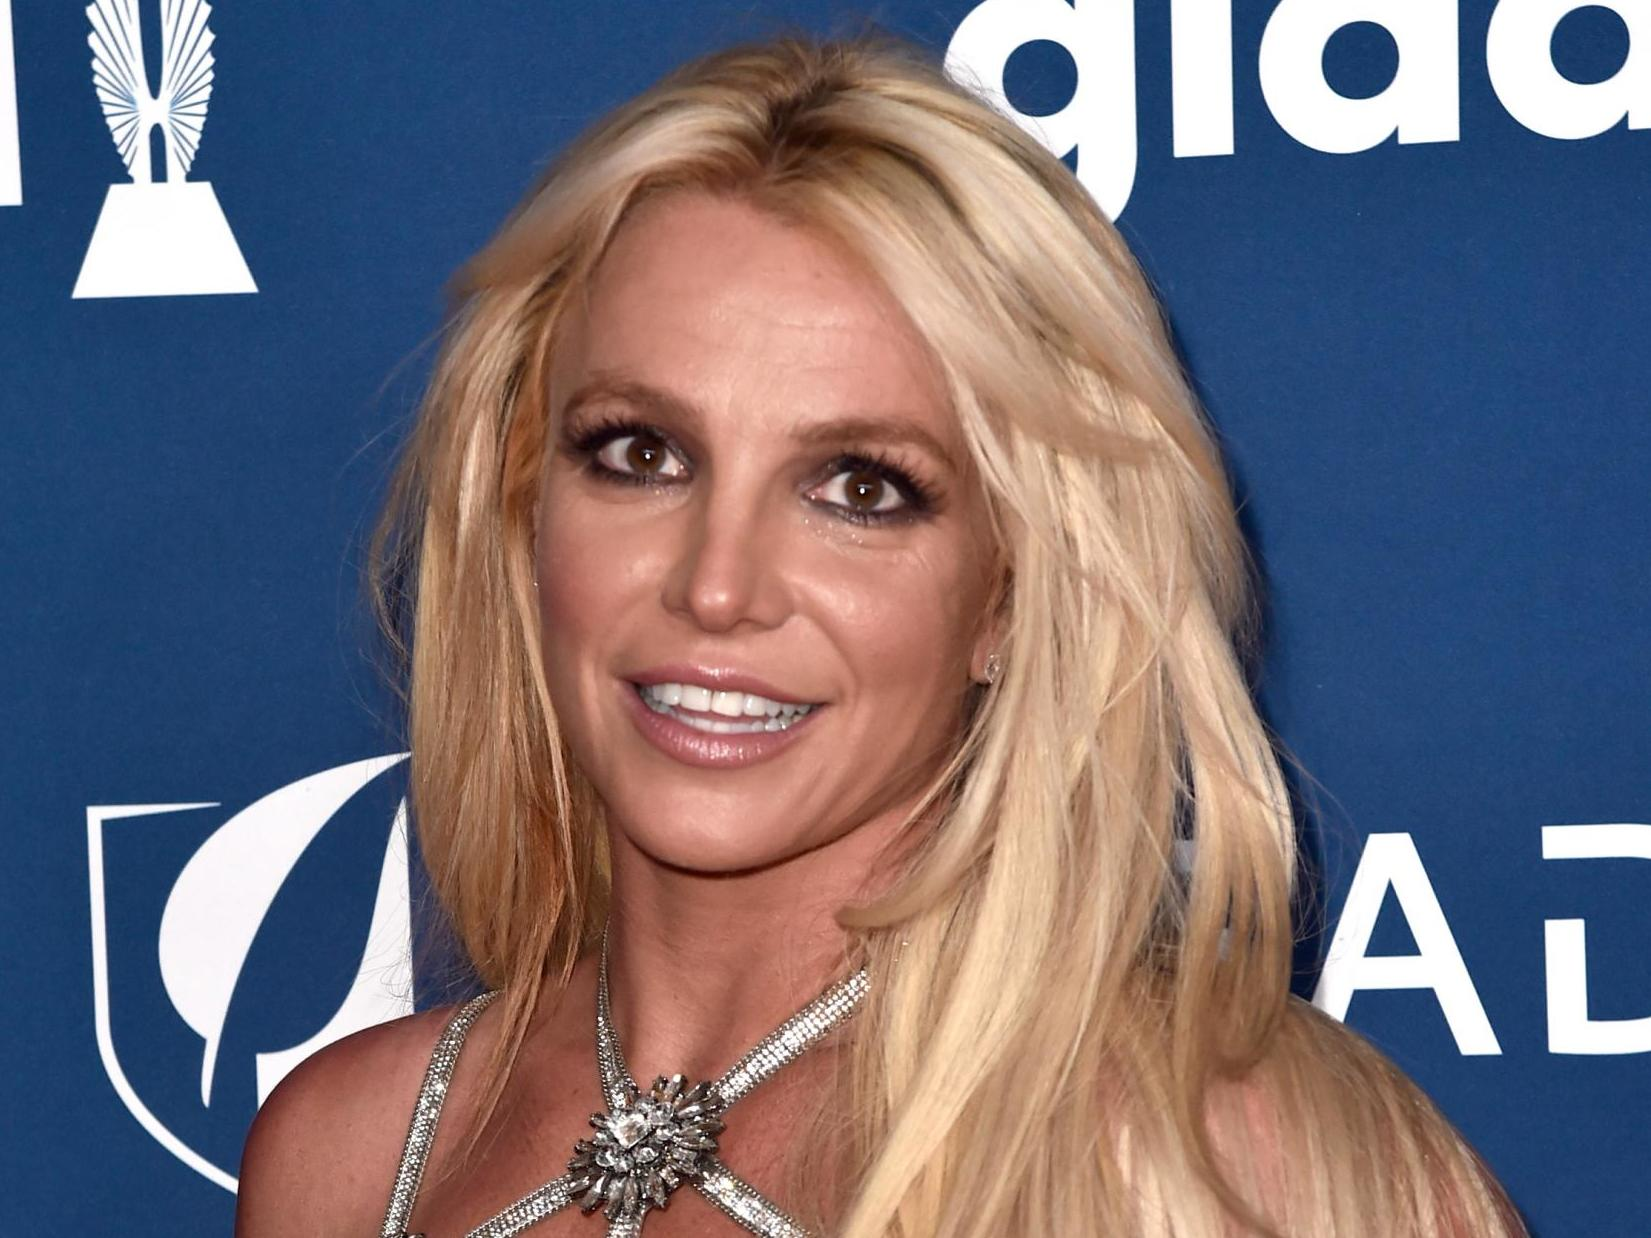 Britney Spears checks into mental health facility after announcing music hiatus